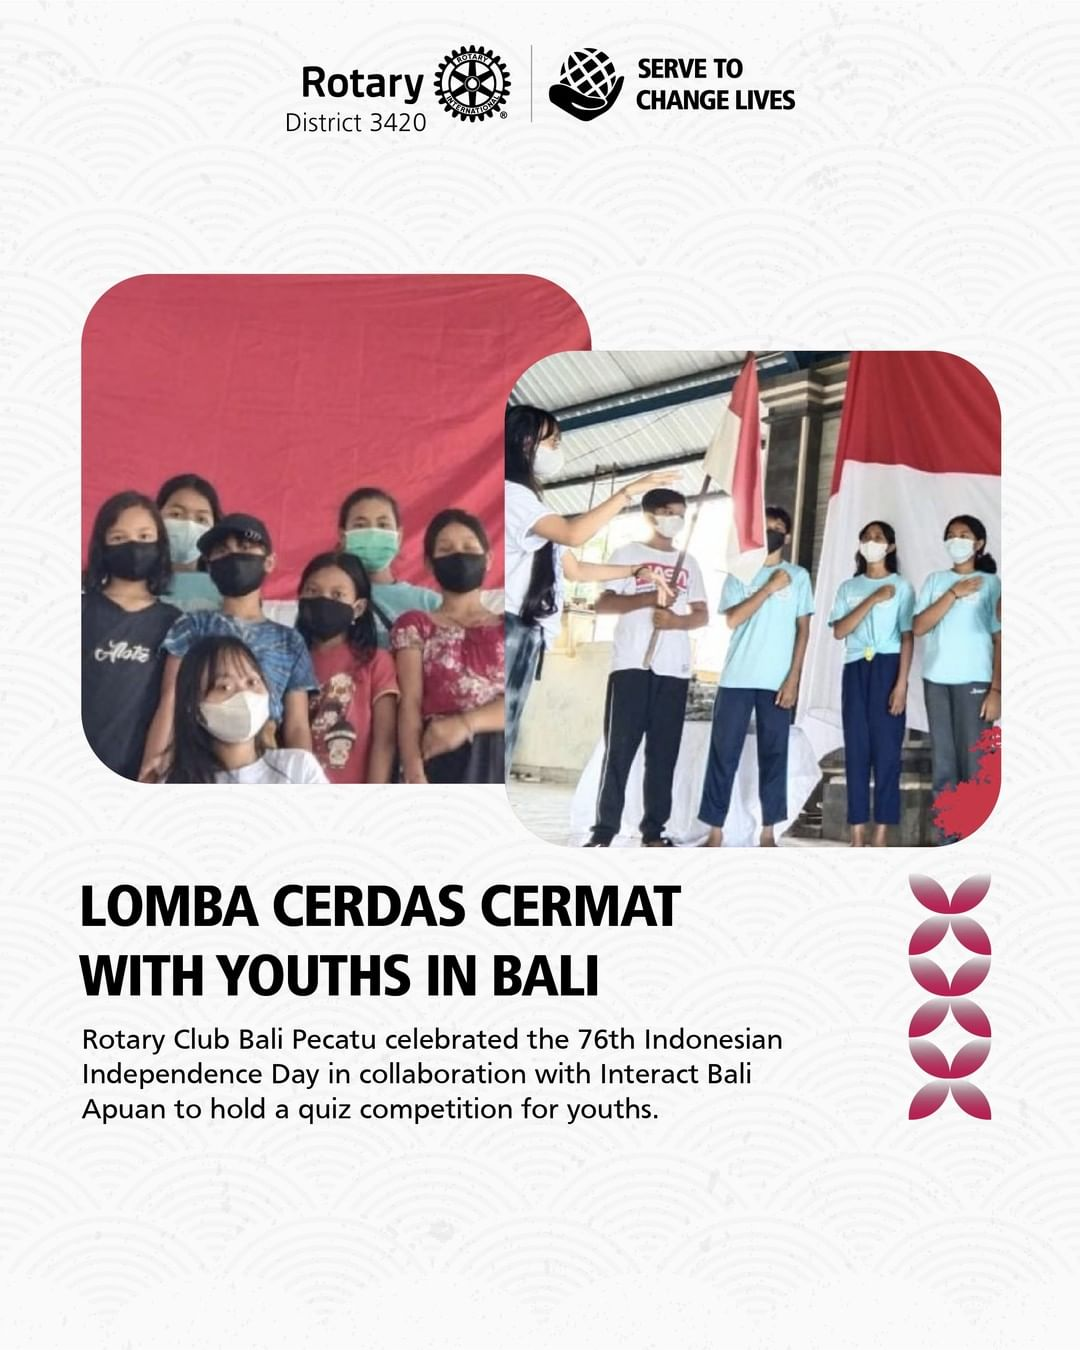 Lomba Cerdas Cermat with Youths in Bali